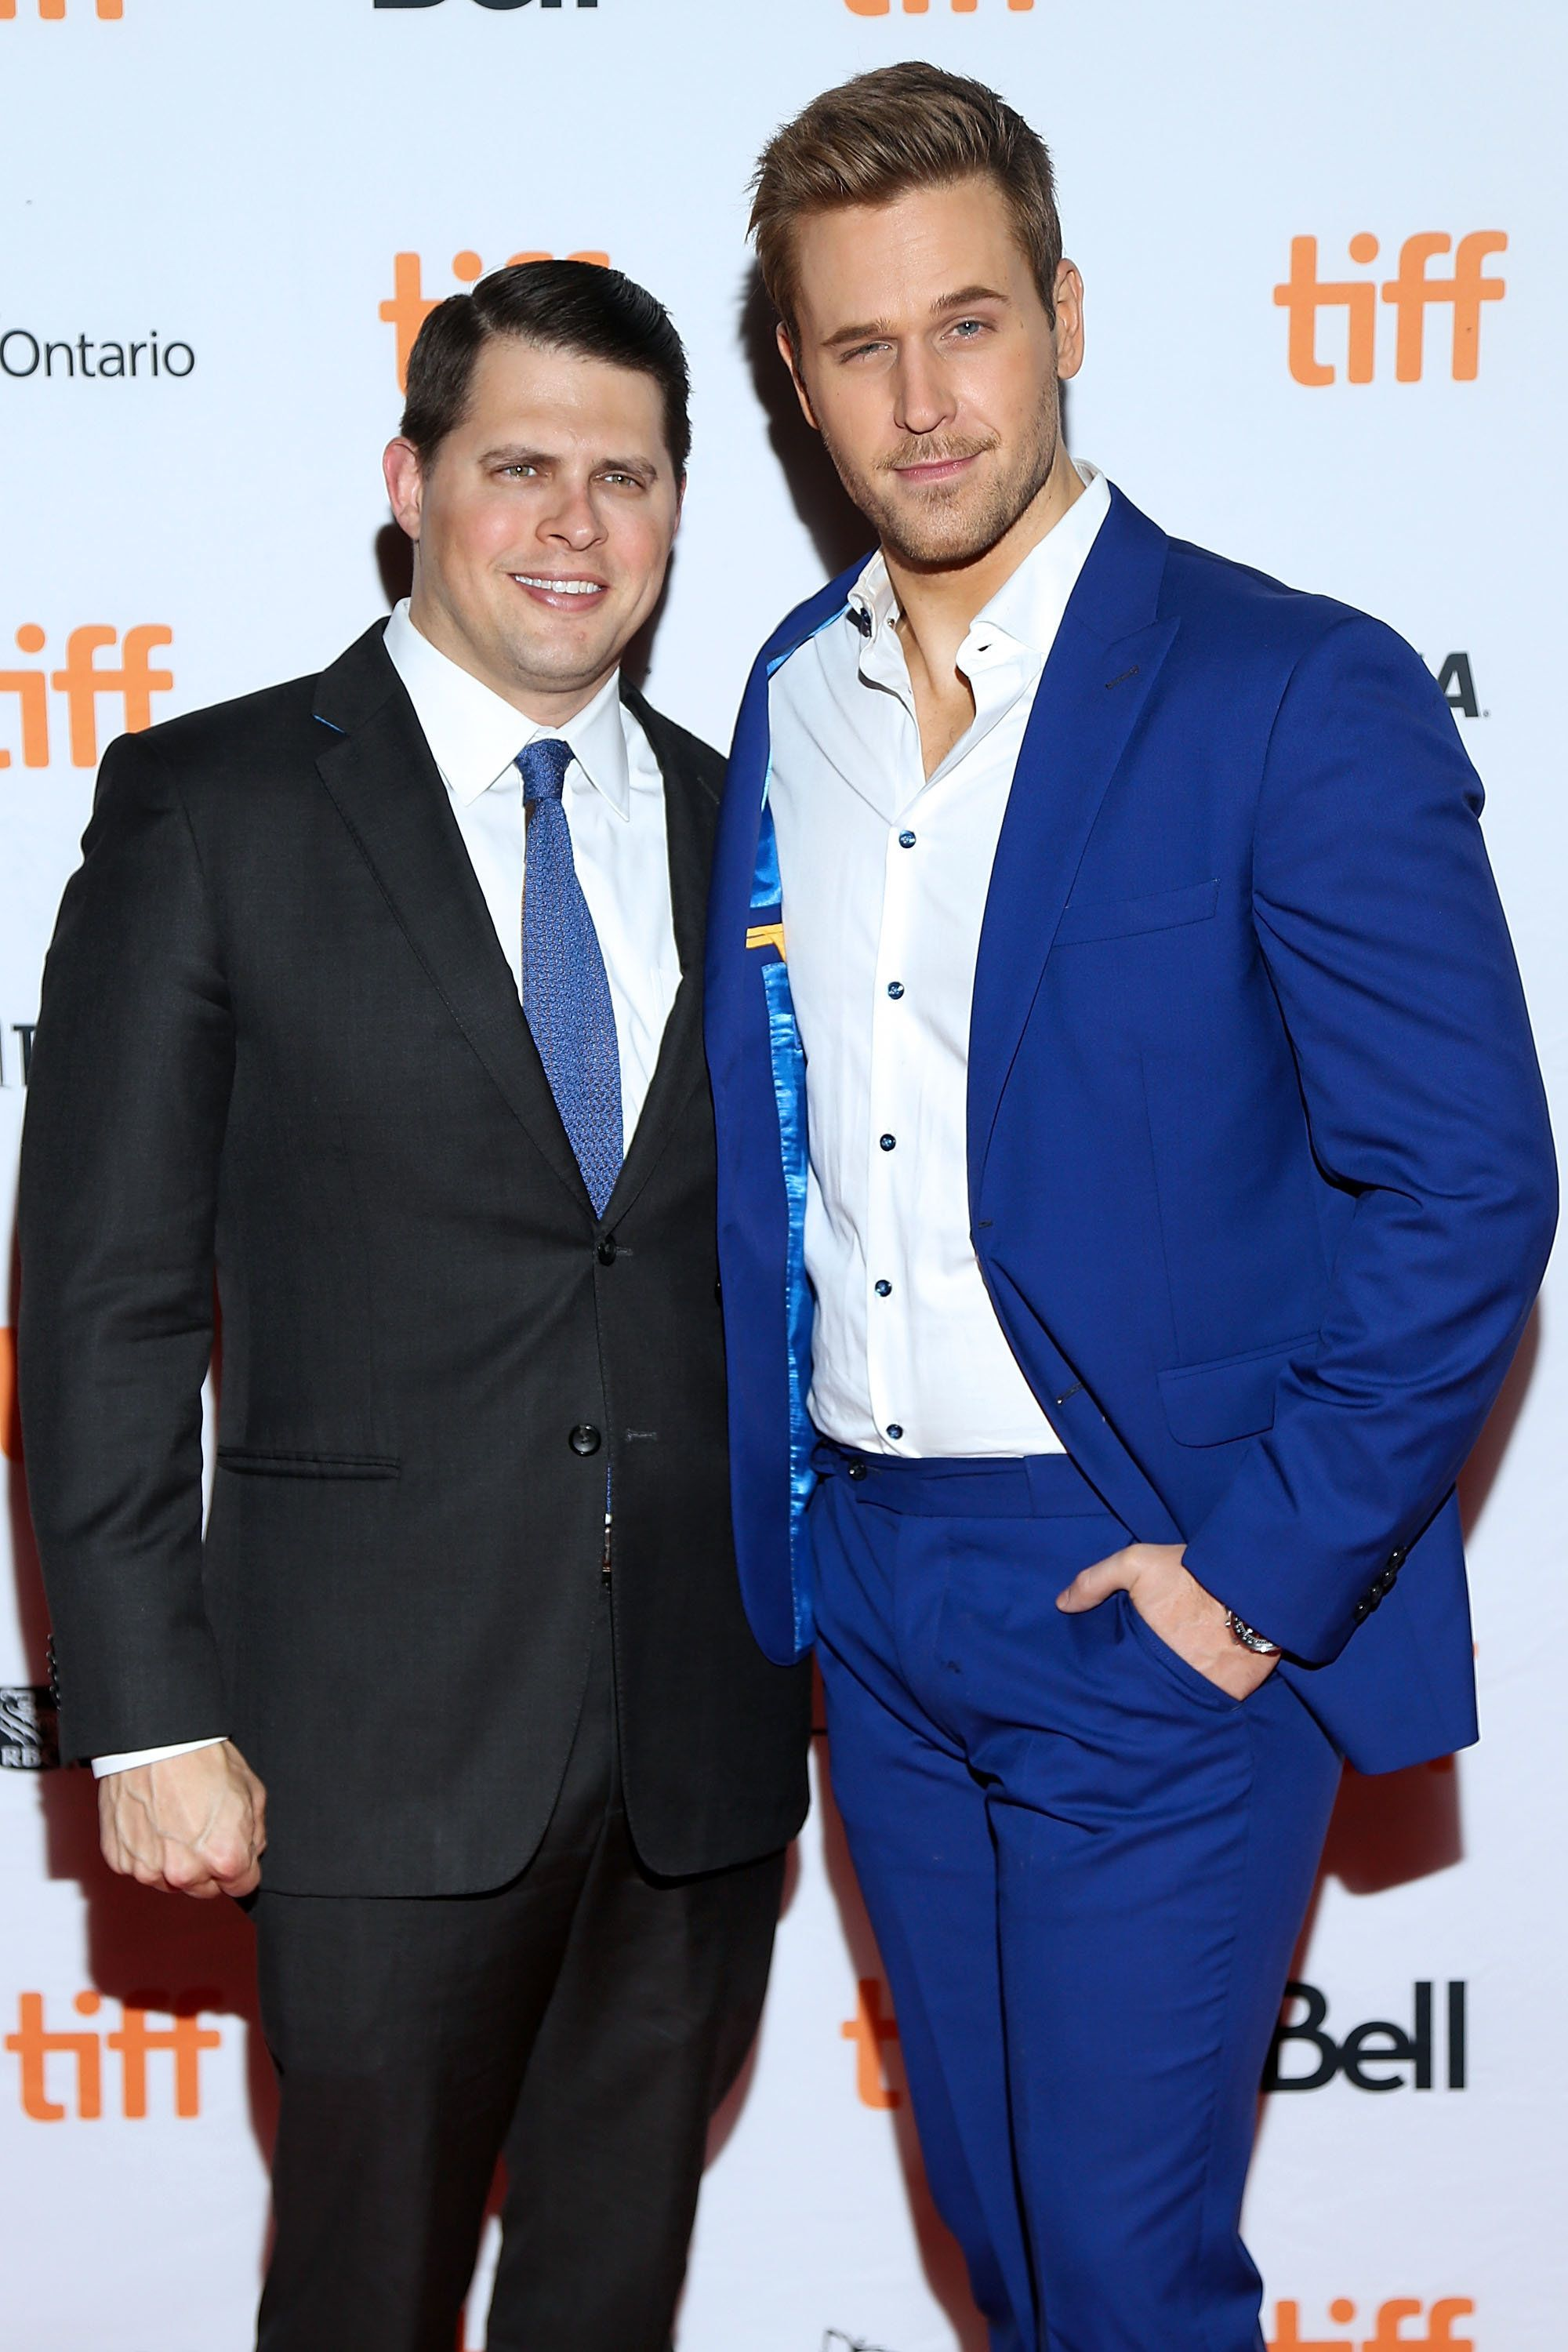 TORONTO, ON - SEPTEMBER 12:  Actor Dan Amboyer (R) and Eric Berger attend the 'Brawl in Cell Block 99' premiere during the 2017 Toronto International Film Festival at Ryerson Theatre on September 12, 2017 in Toronto, Canada.  (Photo by Isaiah Trickey/FilmMagic)